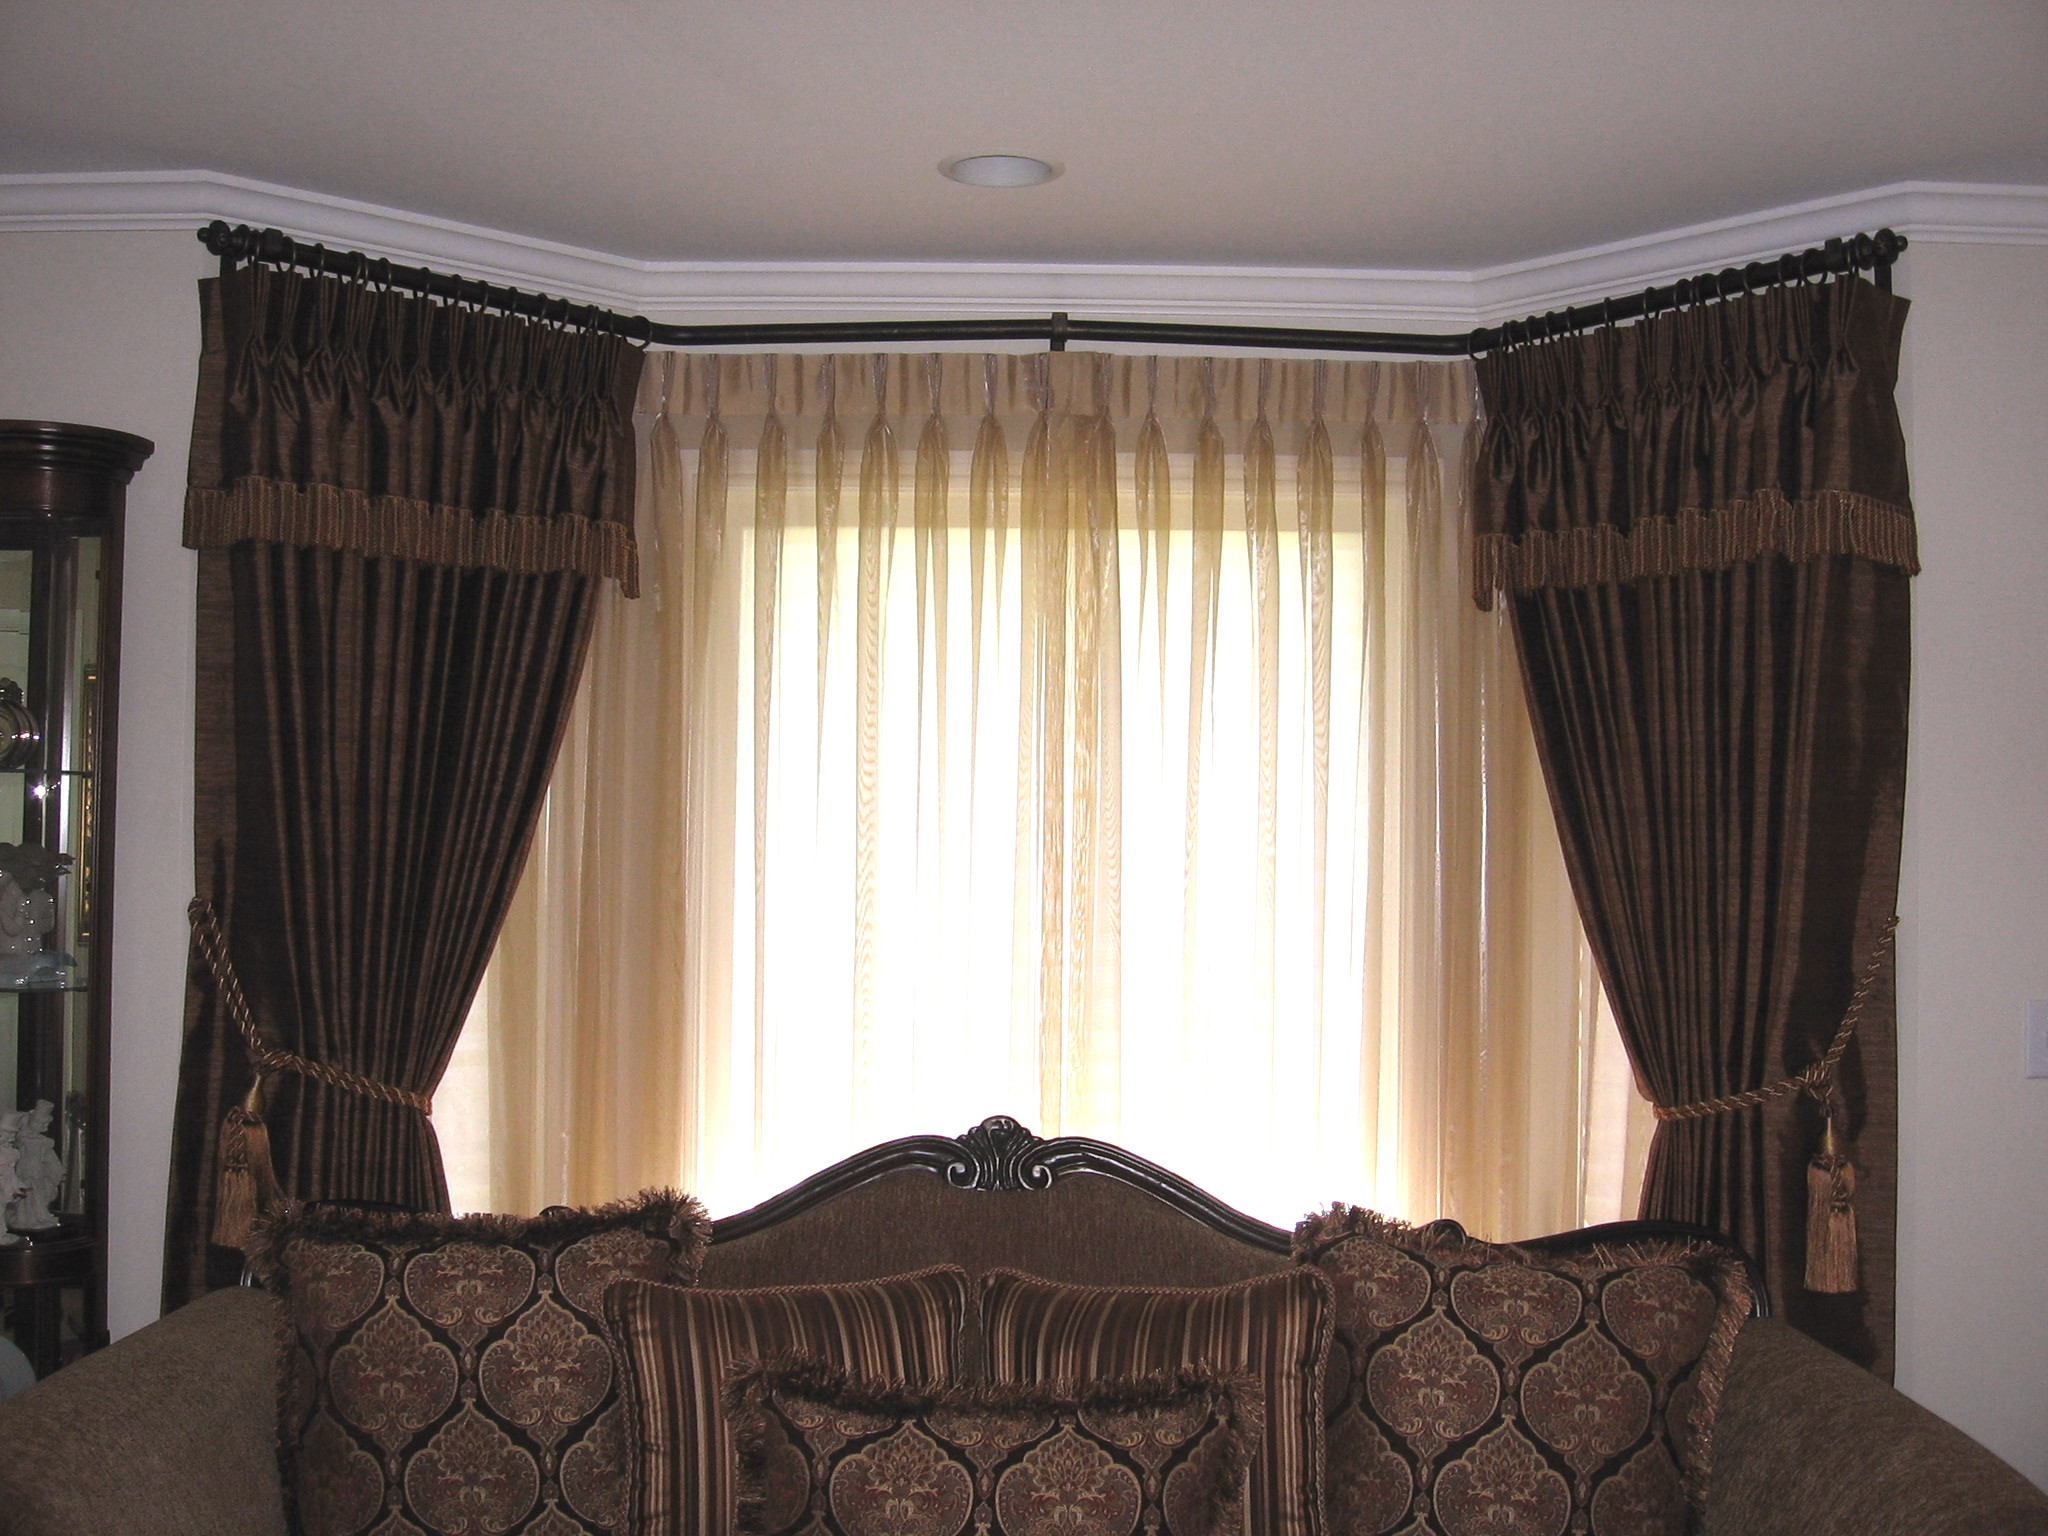 Drape Designers Gallery Images To Inspire Your Home